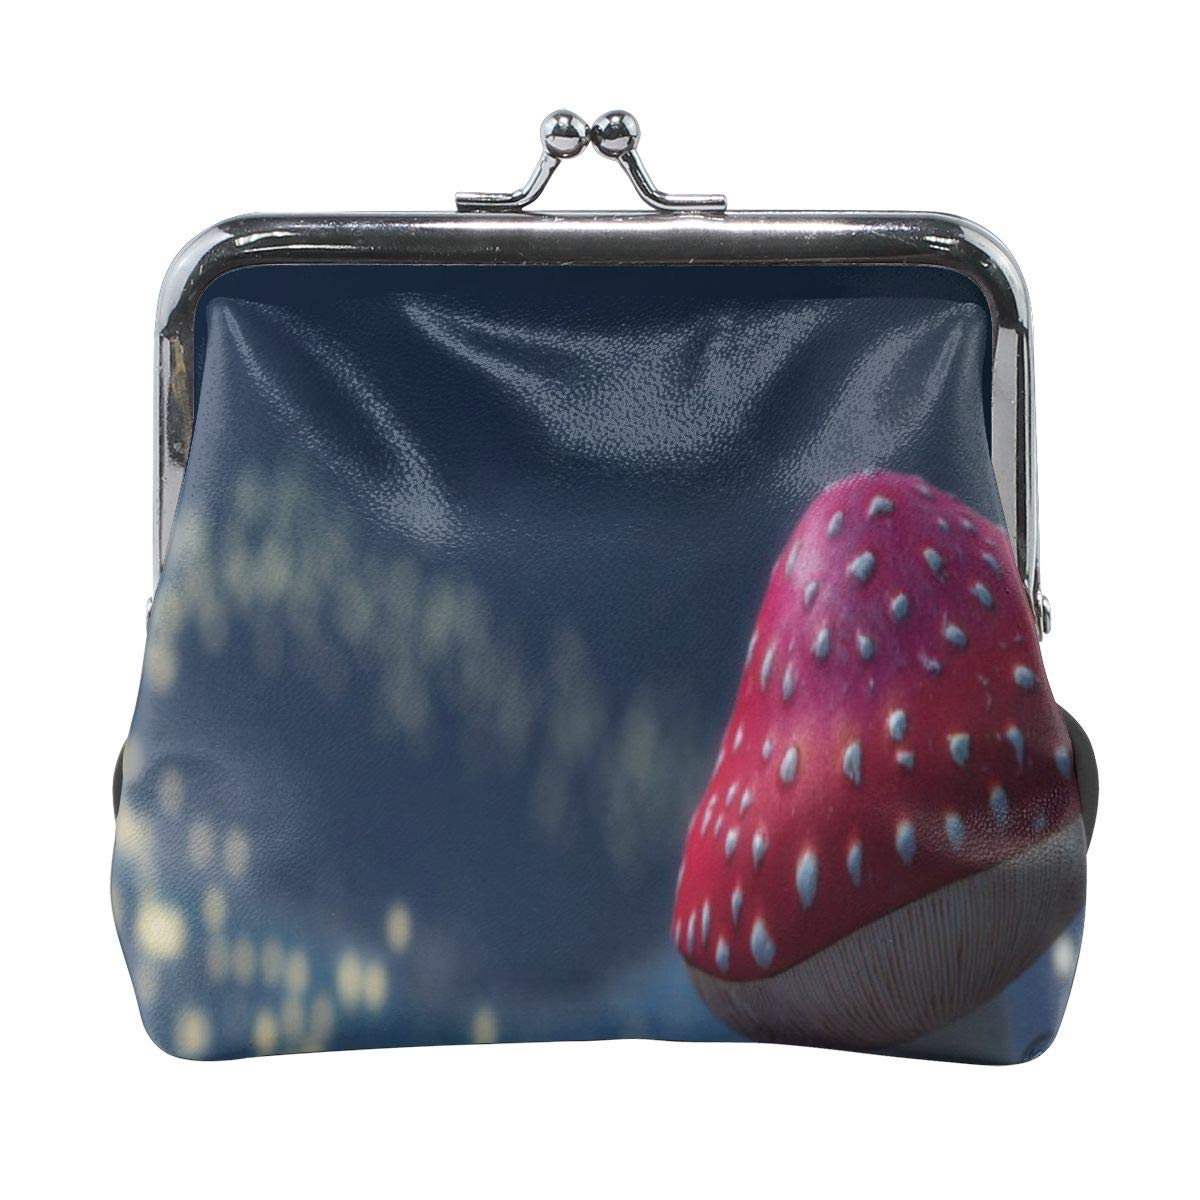 Poream Firefly Red Small Mushroom Customized Retro Leather Cute Classic Floral Coin Purse Clutch Pouch Wallet For Girls And Womens